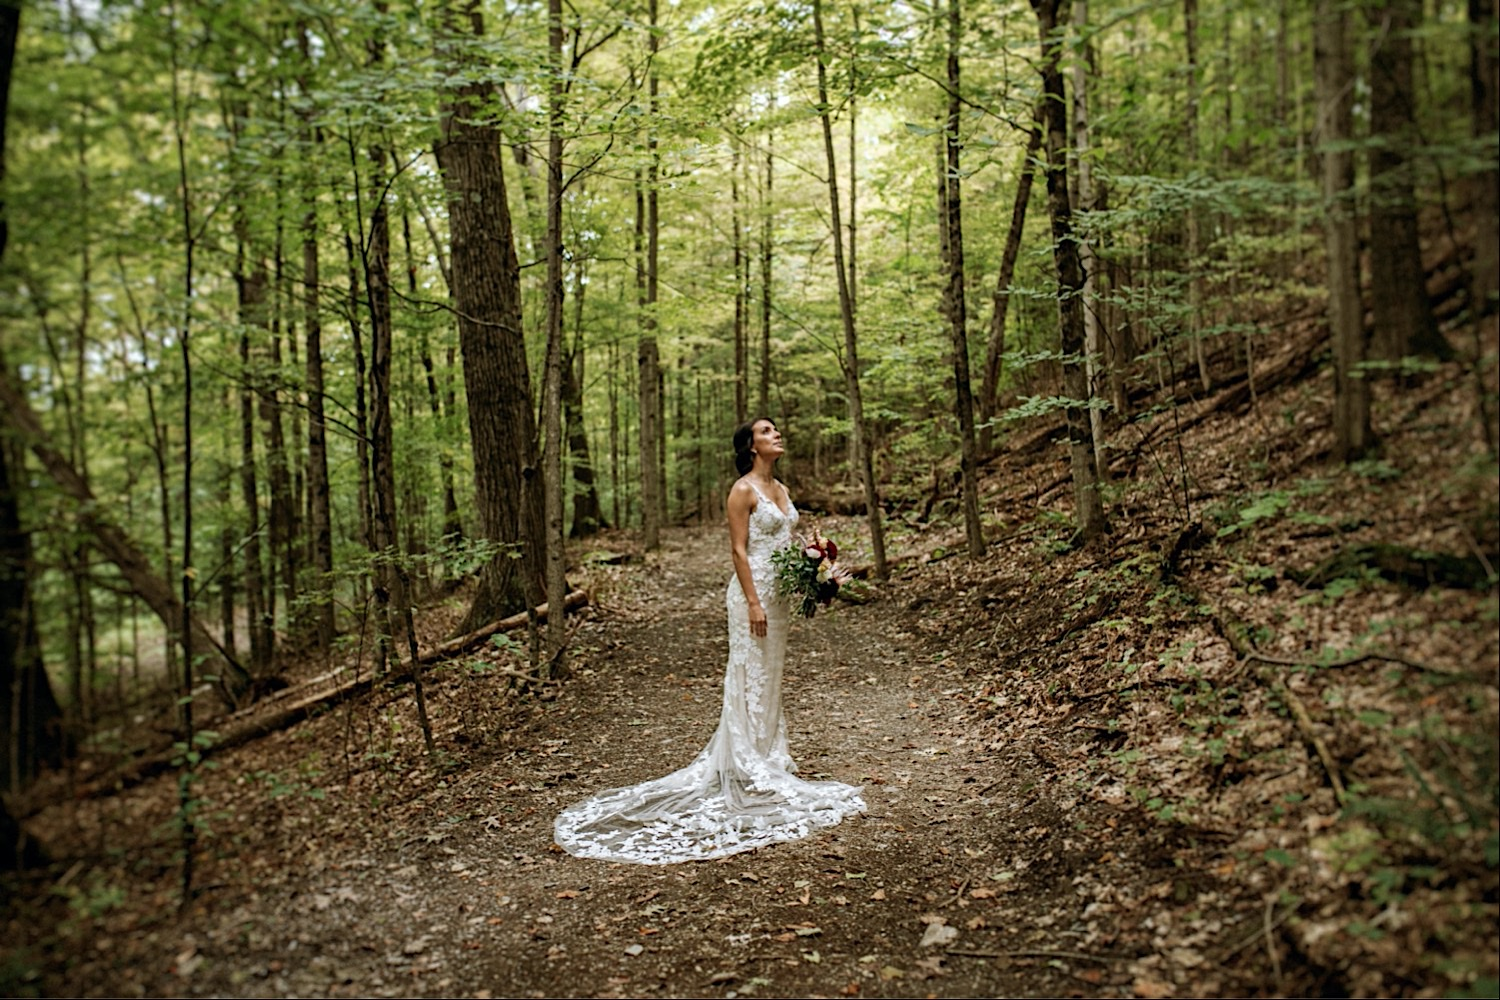 Bomoseen Lodge Wedding - Bride looks upwards towards the light as she stands in her wedding dress in the forest